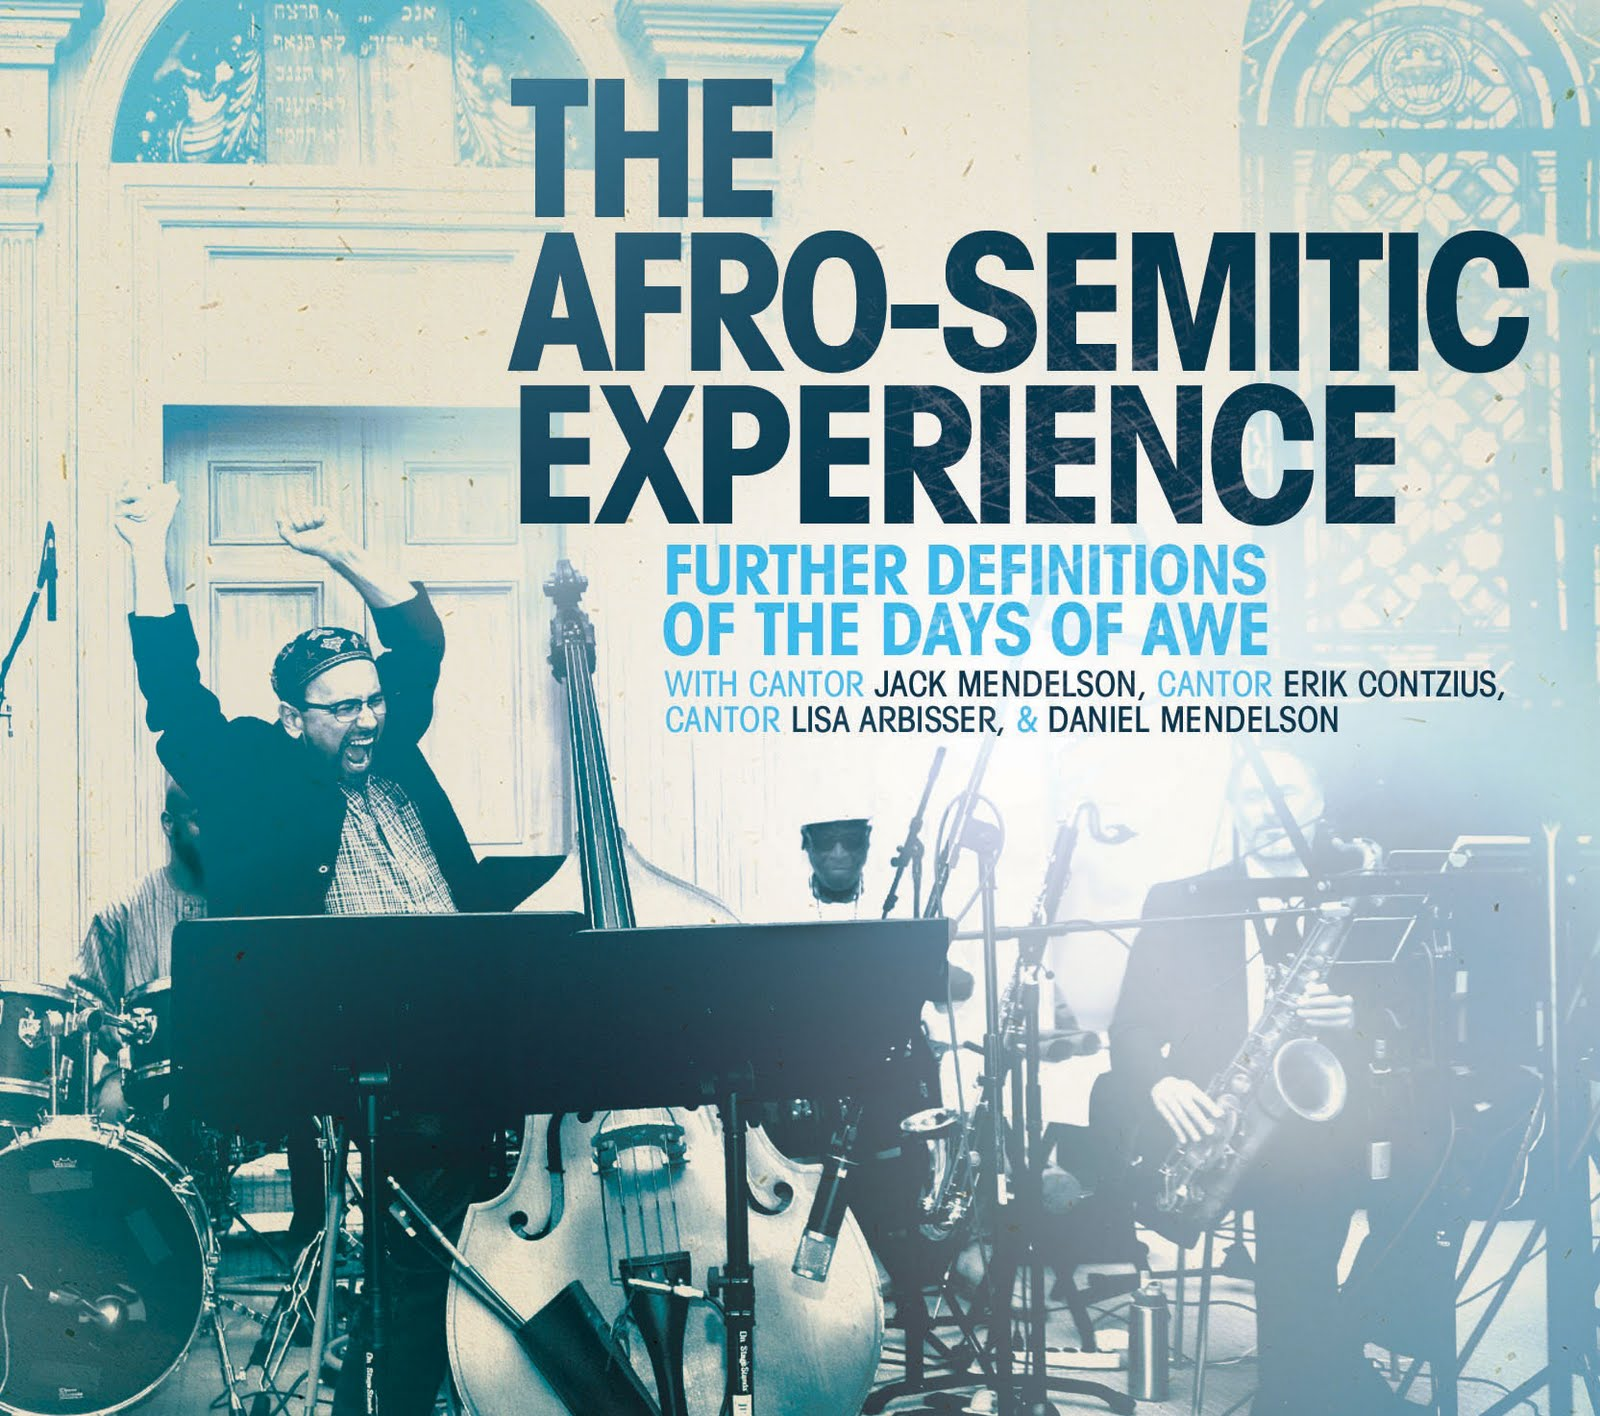 2800 White Plains Rd: Art & Culture Maven: CD Release: The Afro-Semitic